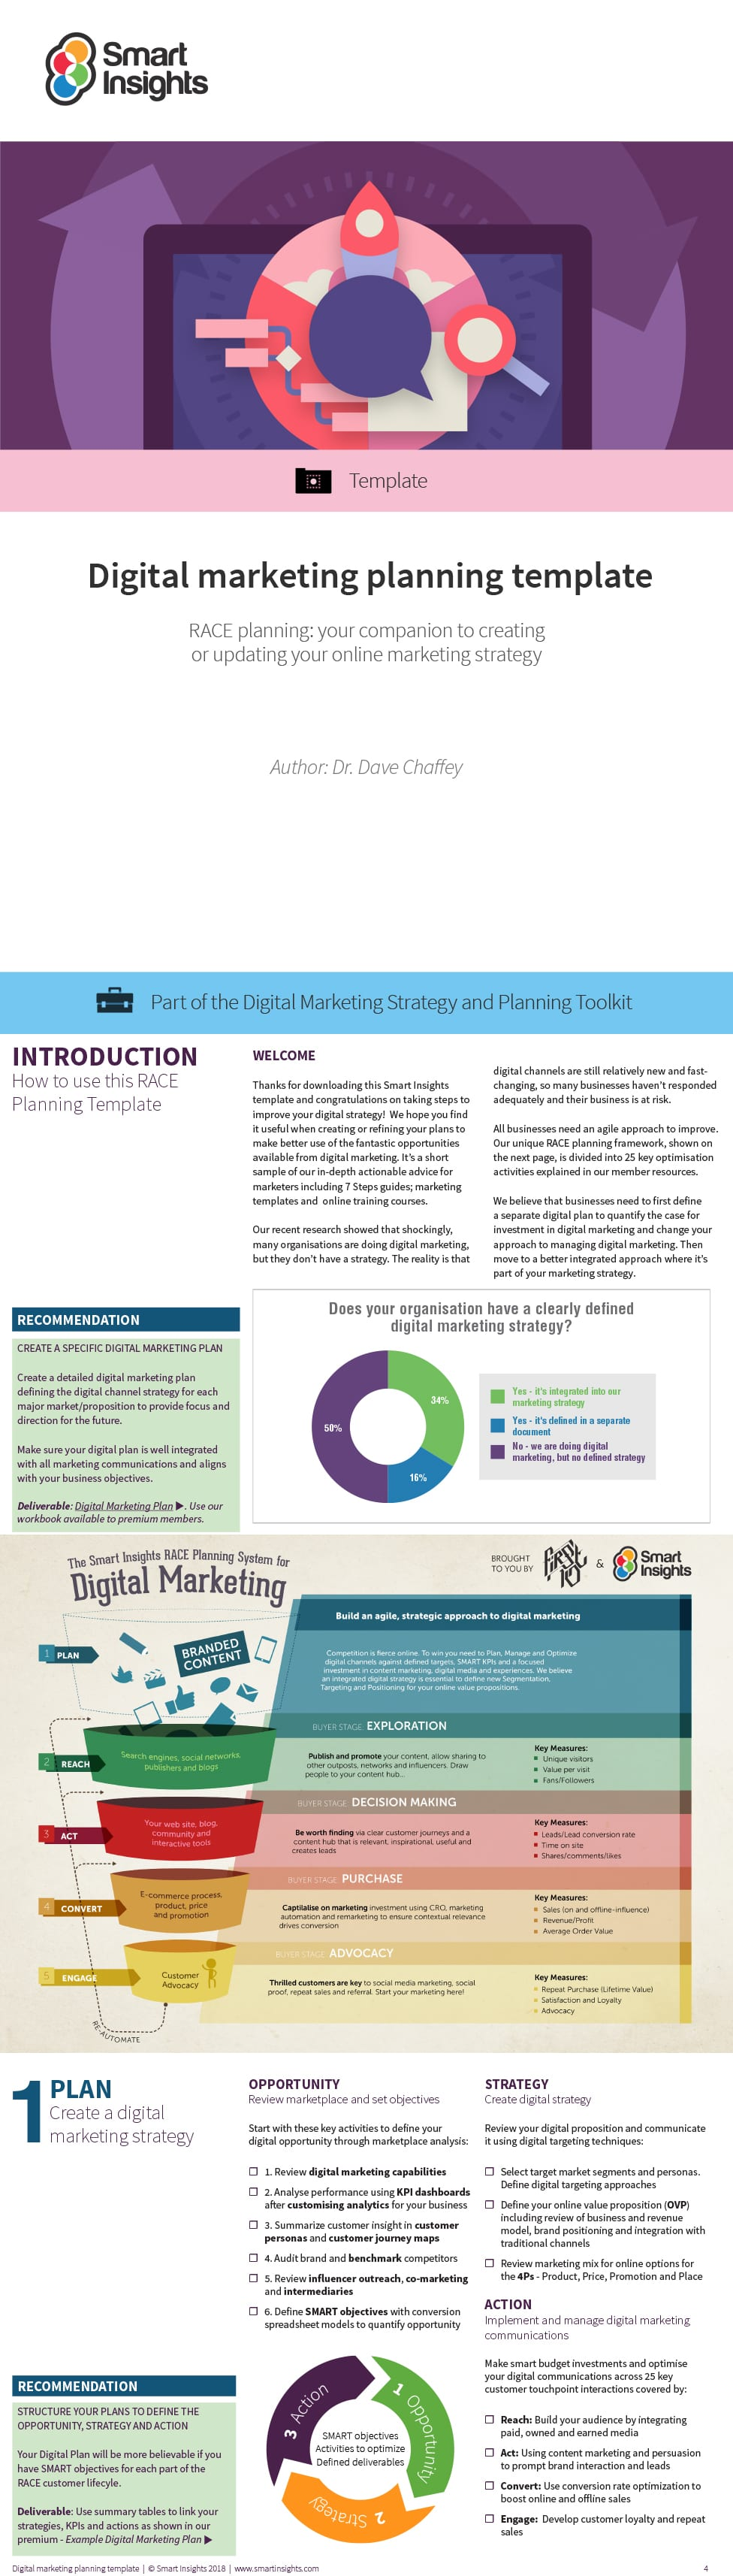 free digital marketing plan template smart insights